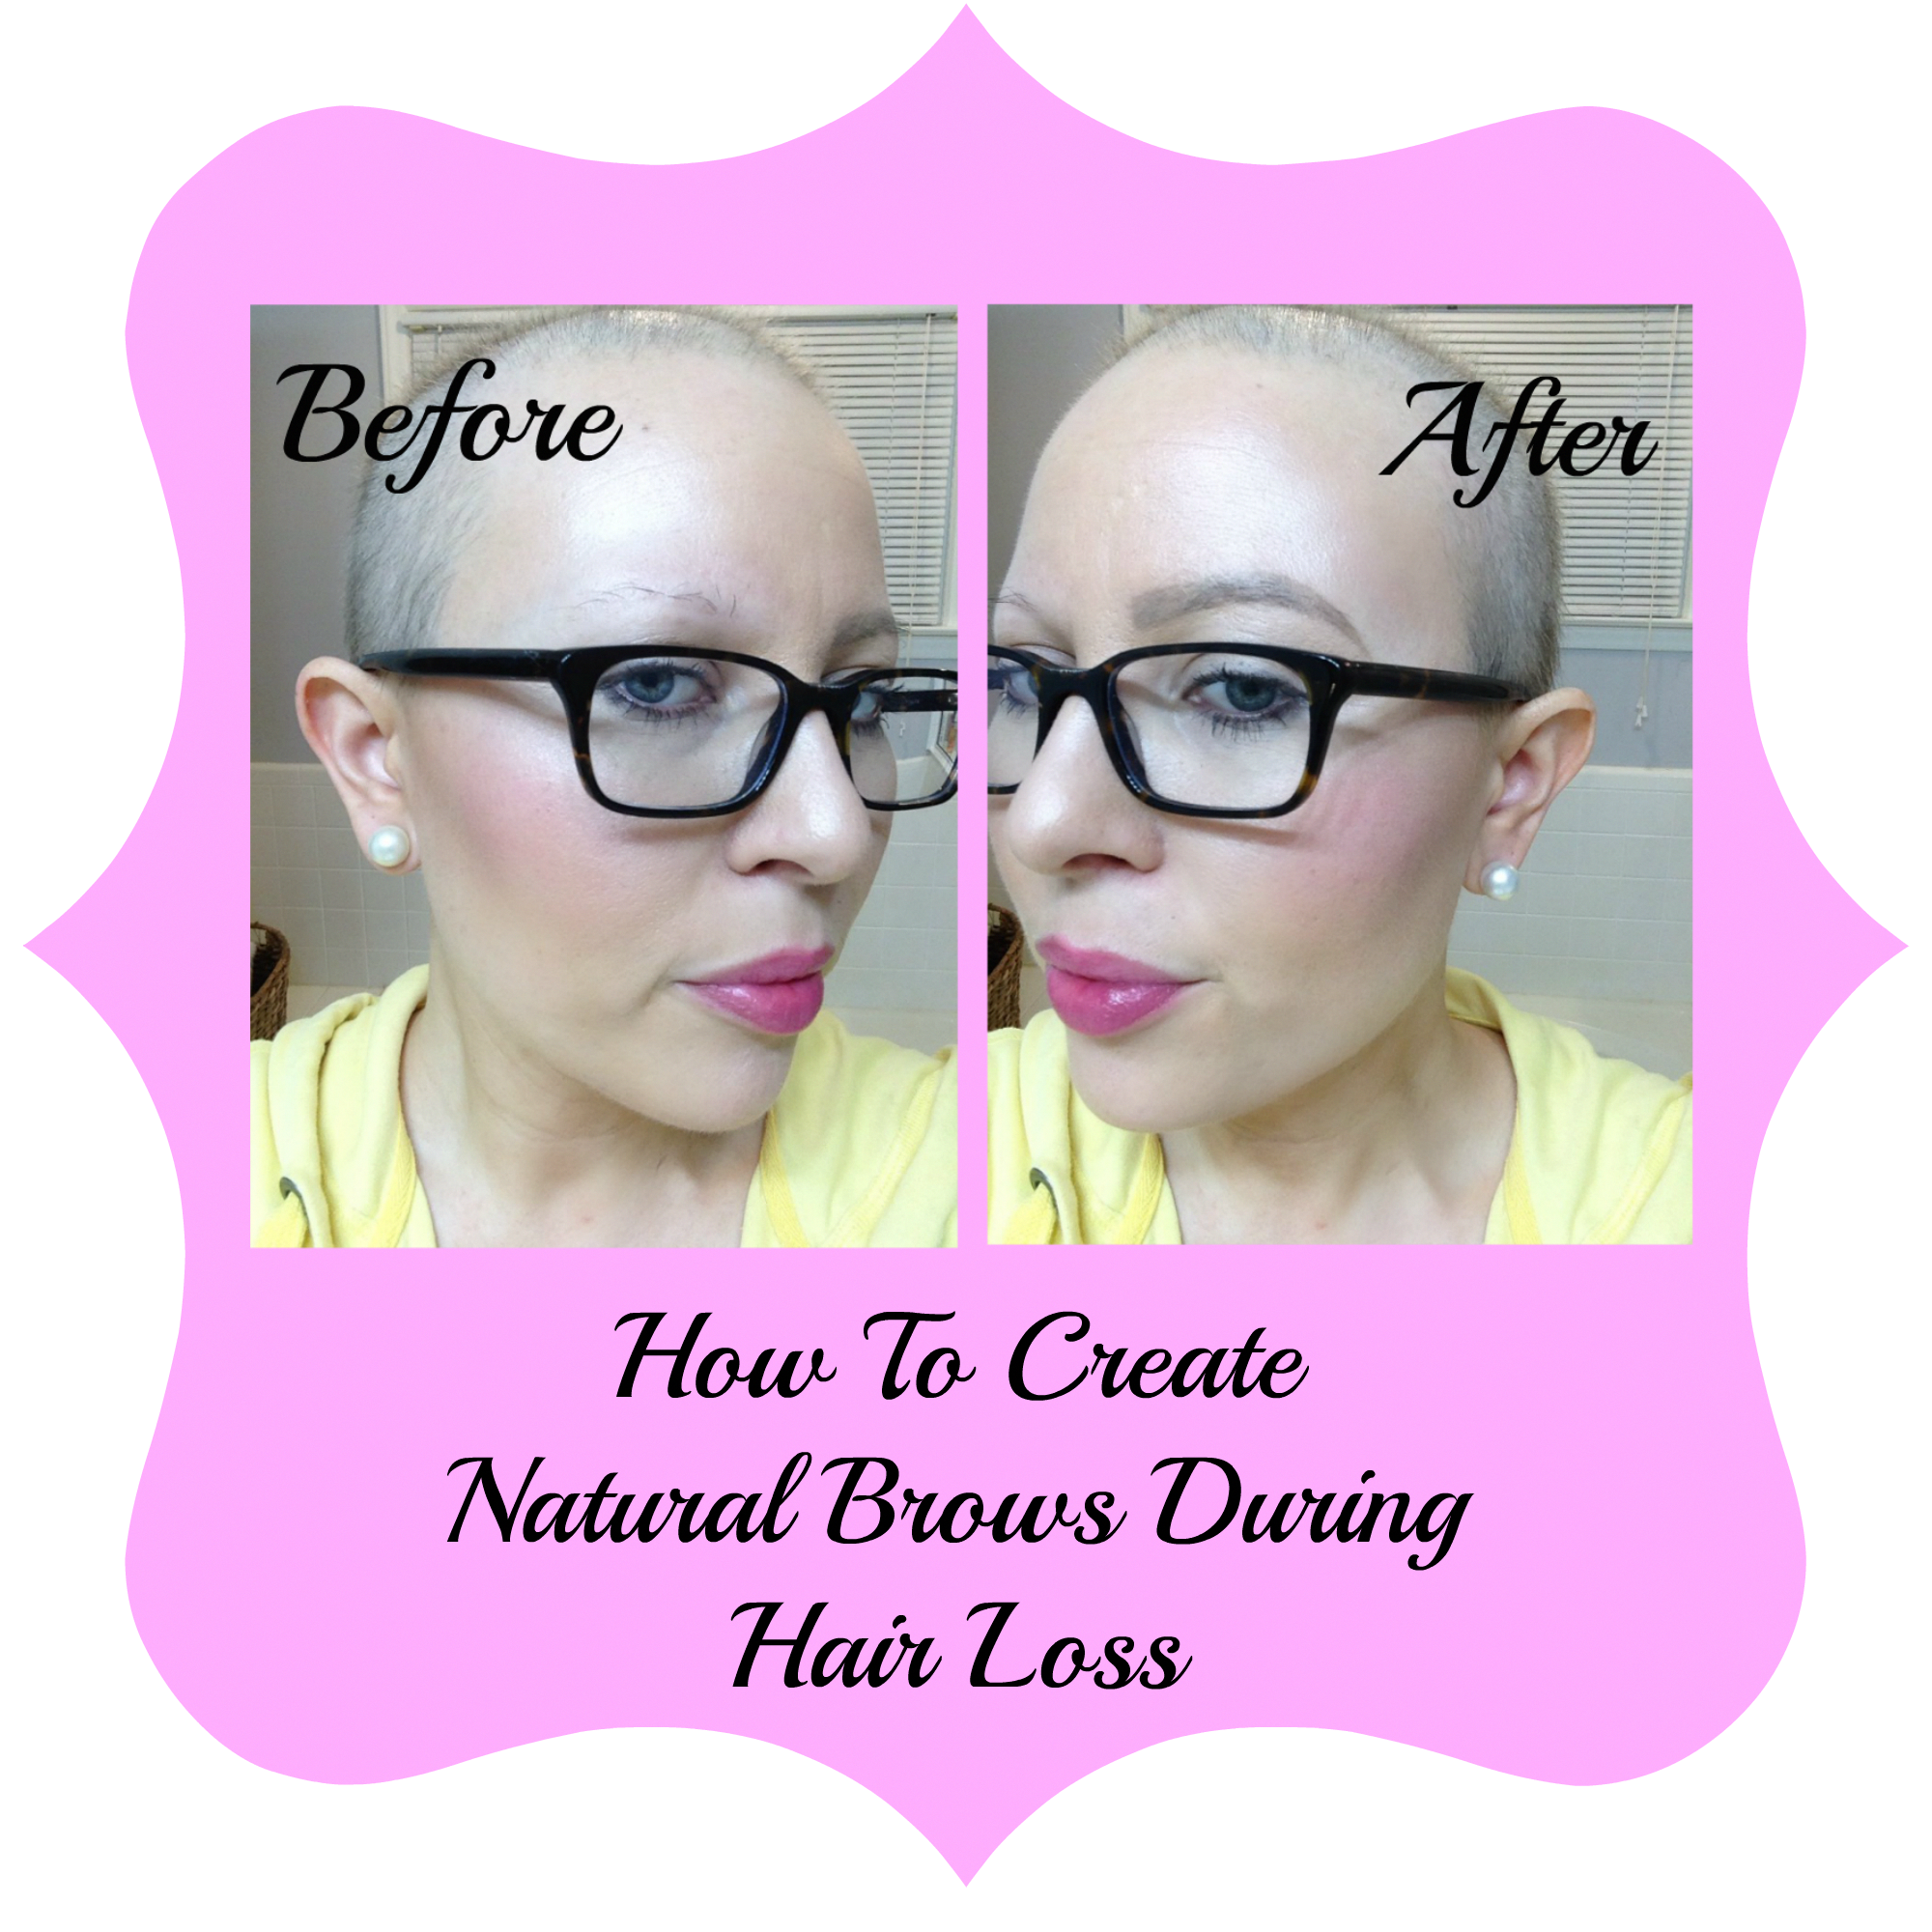 How to create natural brows during hairloss. Chemo